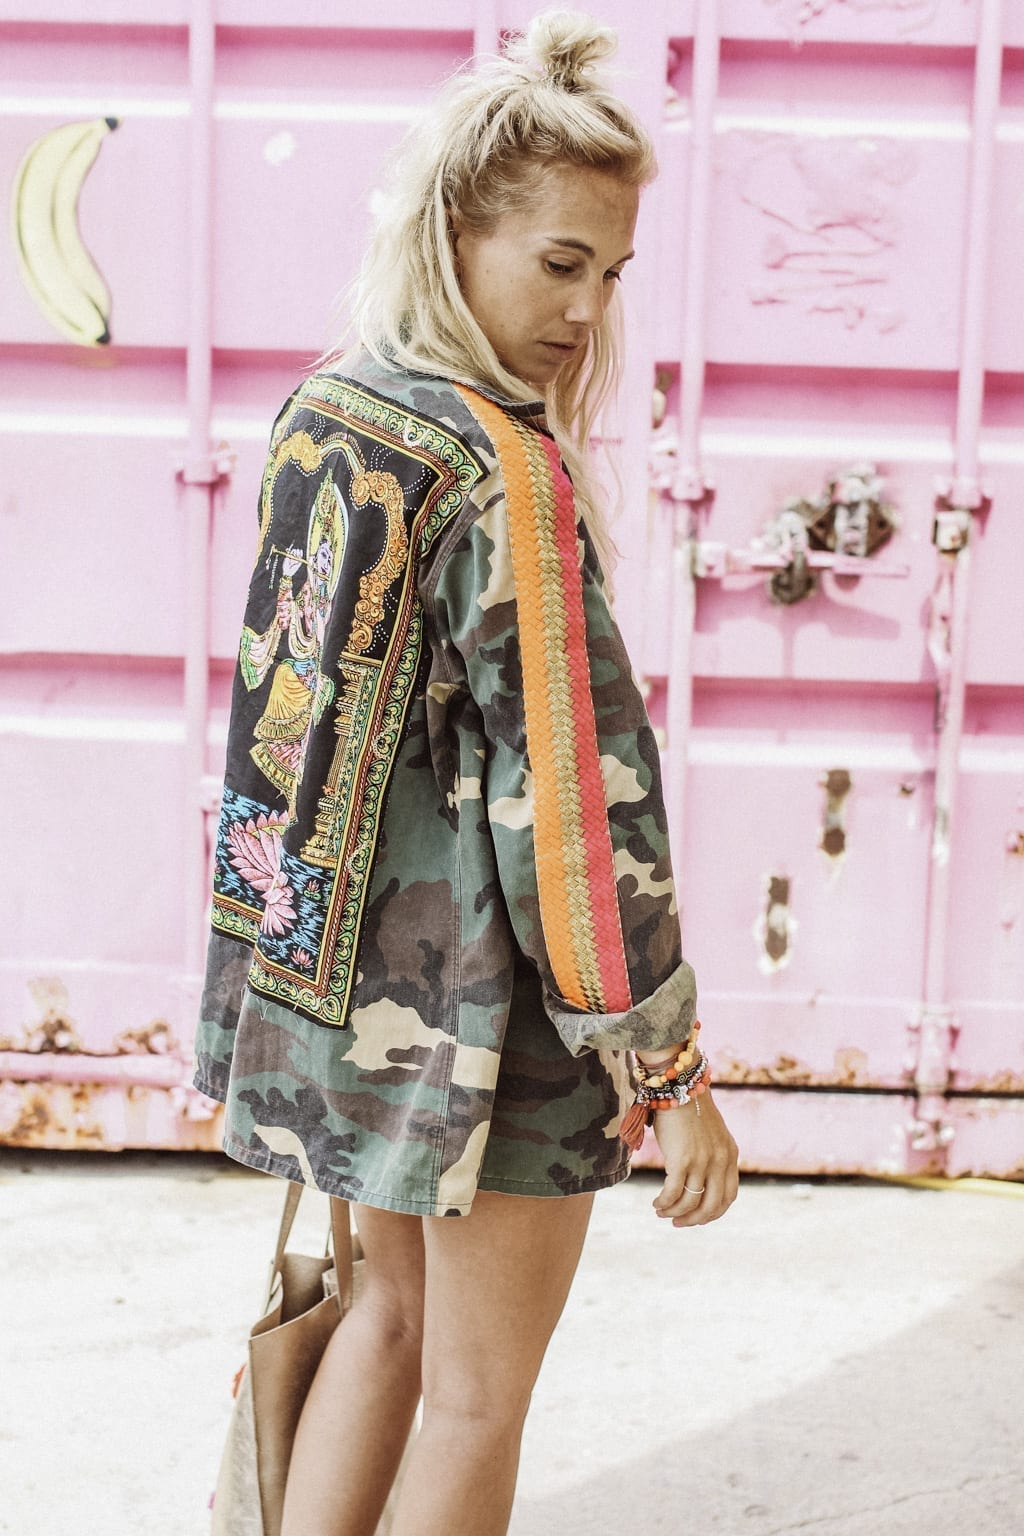 CK1605_Constantly-K-Karin-Kaswurm-Ibiza-Fashion-Beach-Style-At-The-Sea-Boho-Chic-Ethno-Military-Jacket-Ibiza-Style-9064